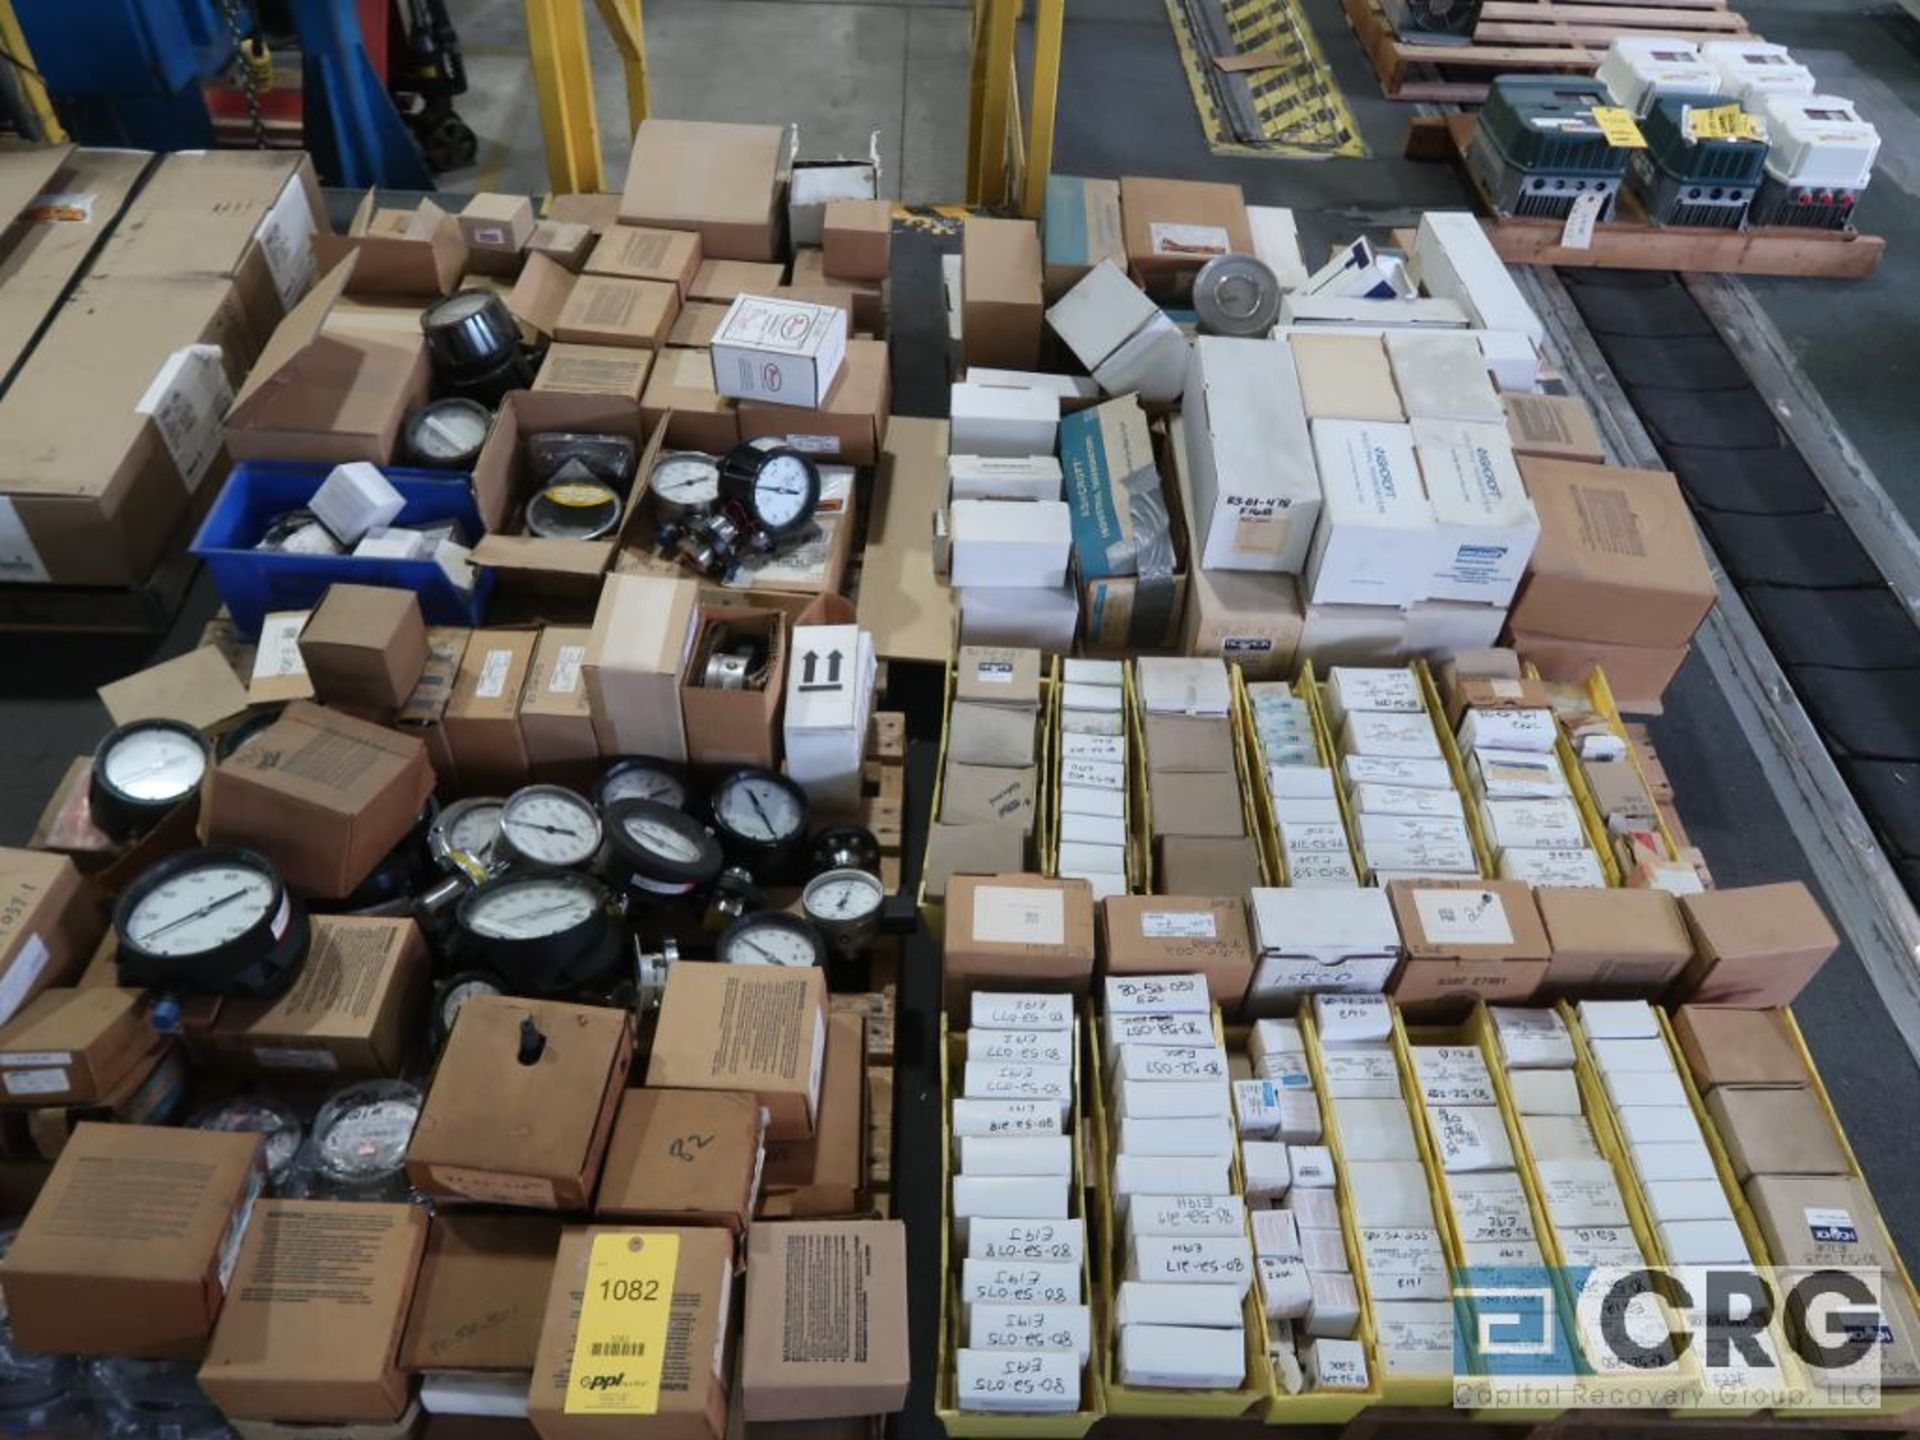 Lot of assorted temperature and pressure gauges on (4) pallets (Finish Building)